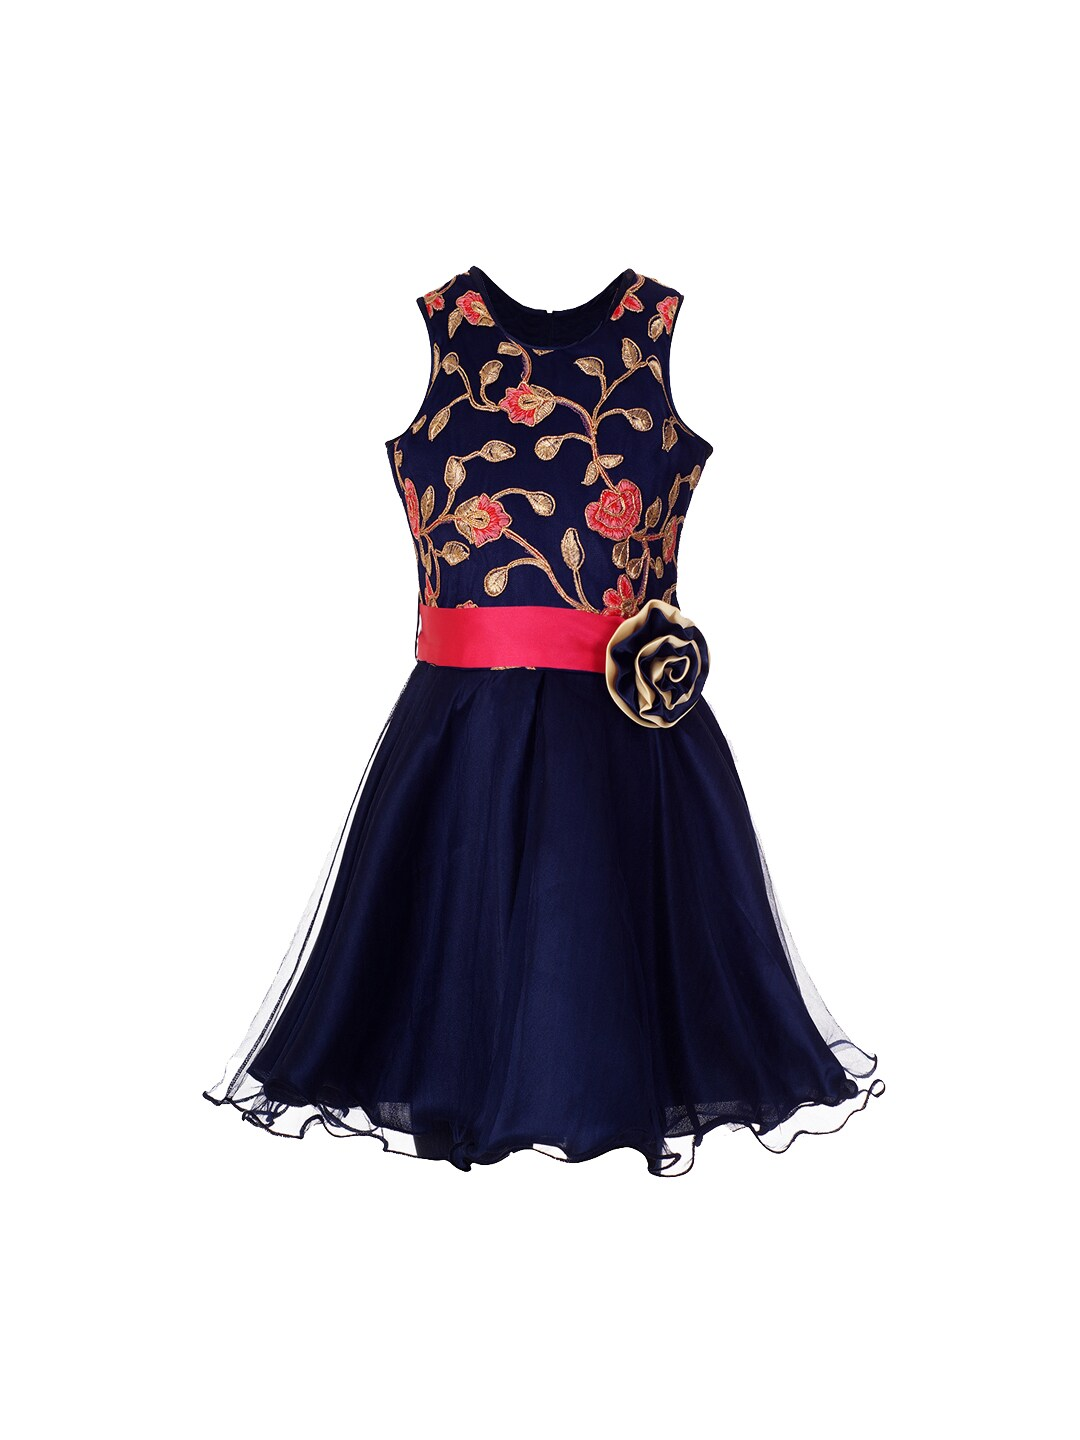 4901bc2cf naughty ninos Girls Navy Blue   Red Embroidered Fit and Flare Dress